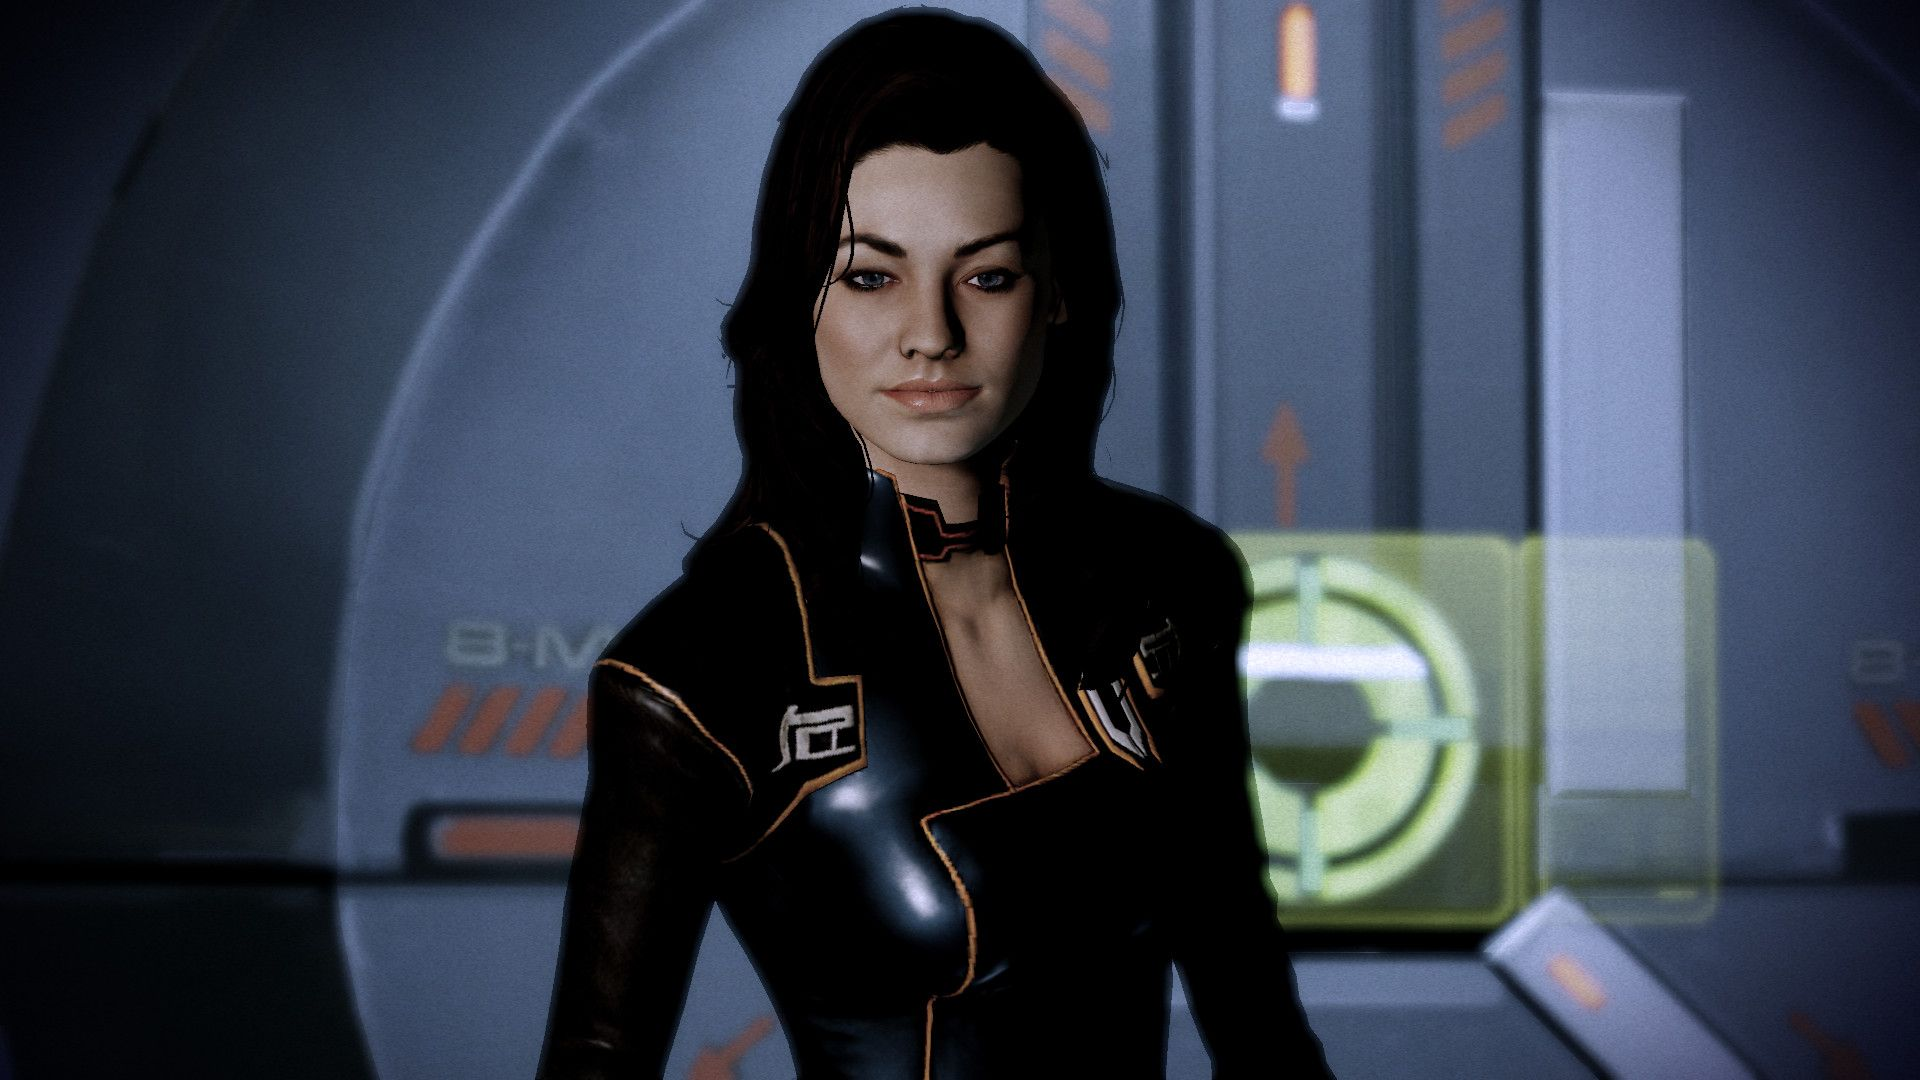 Mass effect 2 miranda stripping exposed pictures